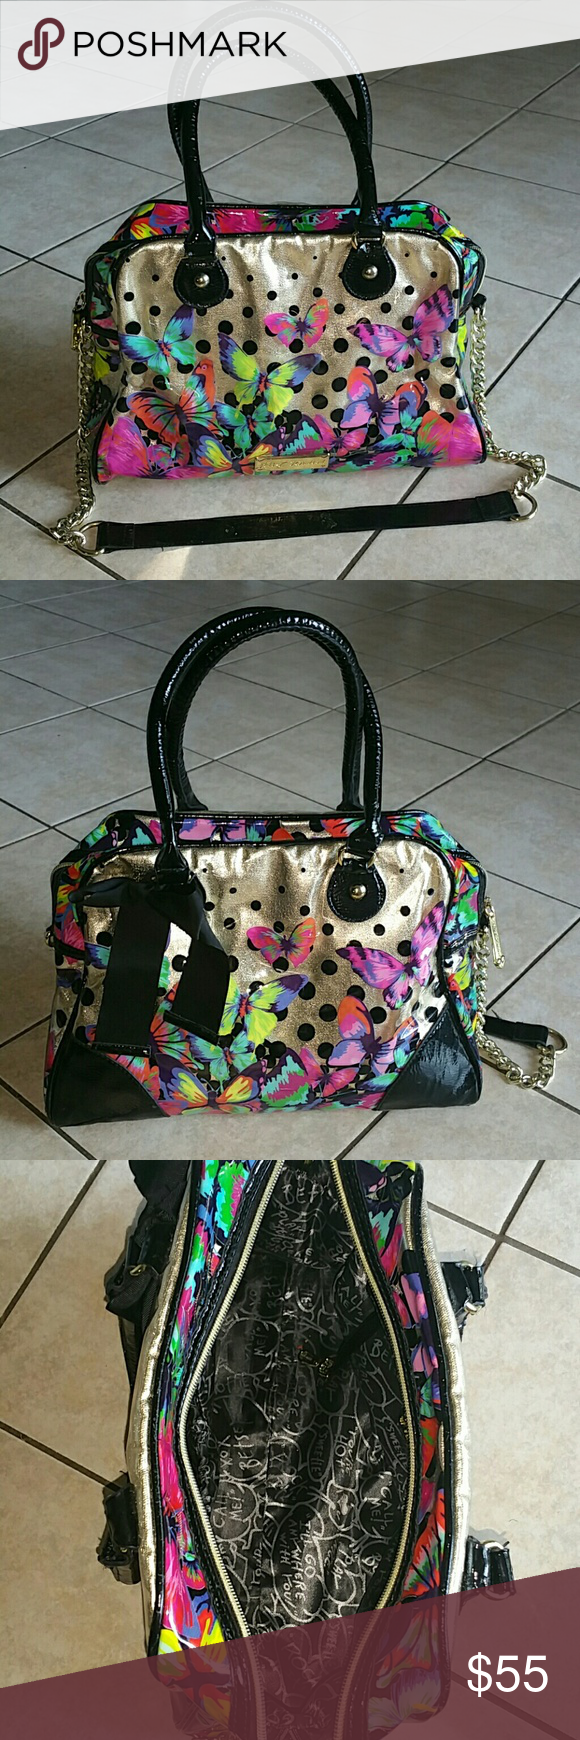 Betsey Johnson purse Beautiful bright butterflies on clear vynel, background is gold. Inside has black and white lining with different phrases. One zippered co.partment inside, two smaller pockets. Handles have a small amount of wear but in overall good condition. Shoulder strap is in great condition. Measurements are: 13.5 inches across, 10 inches on height, 5 inches on sides. Betsey Johnson Bags Shoulder Bags